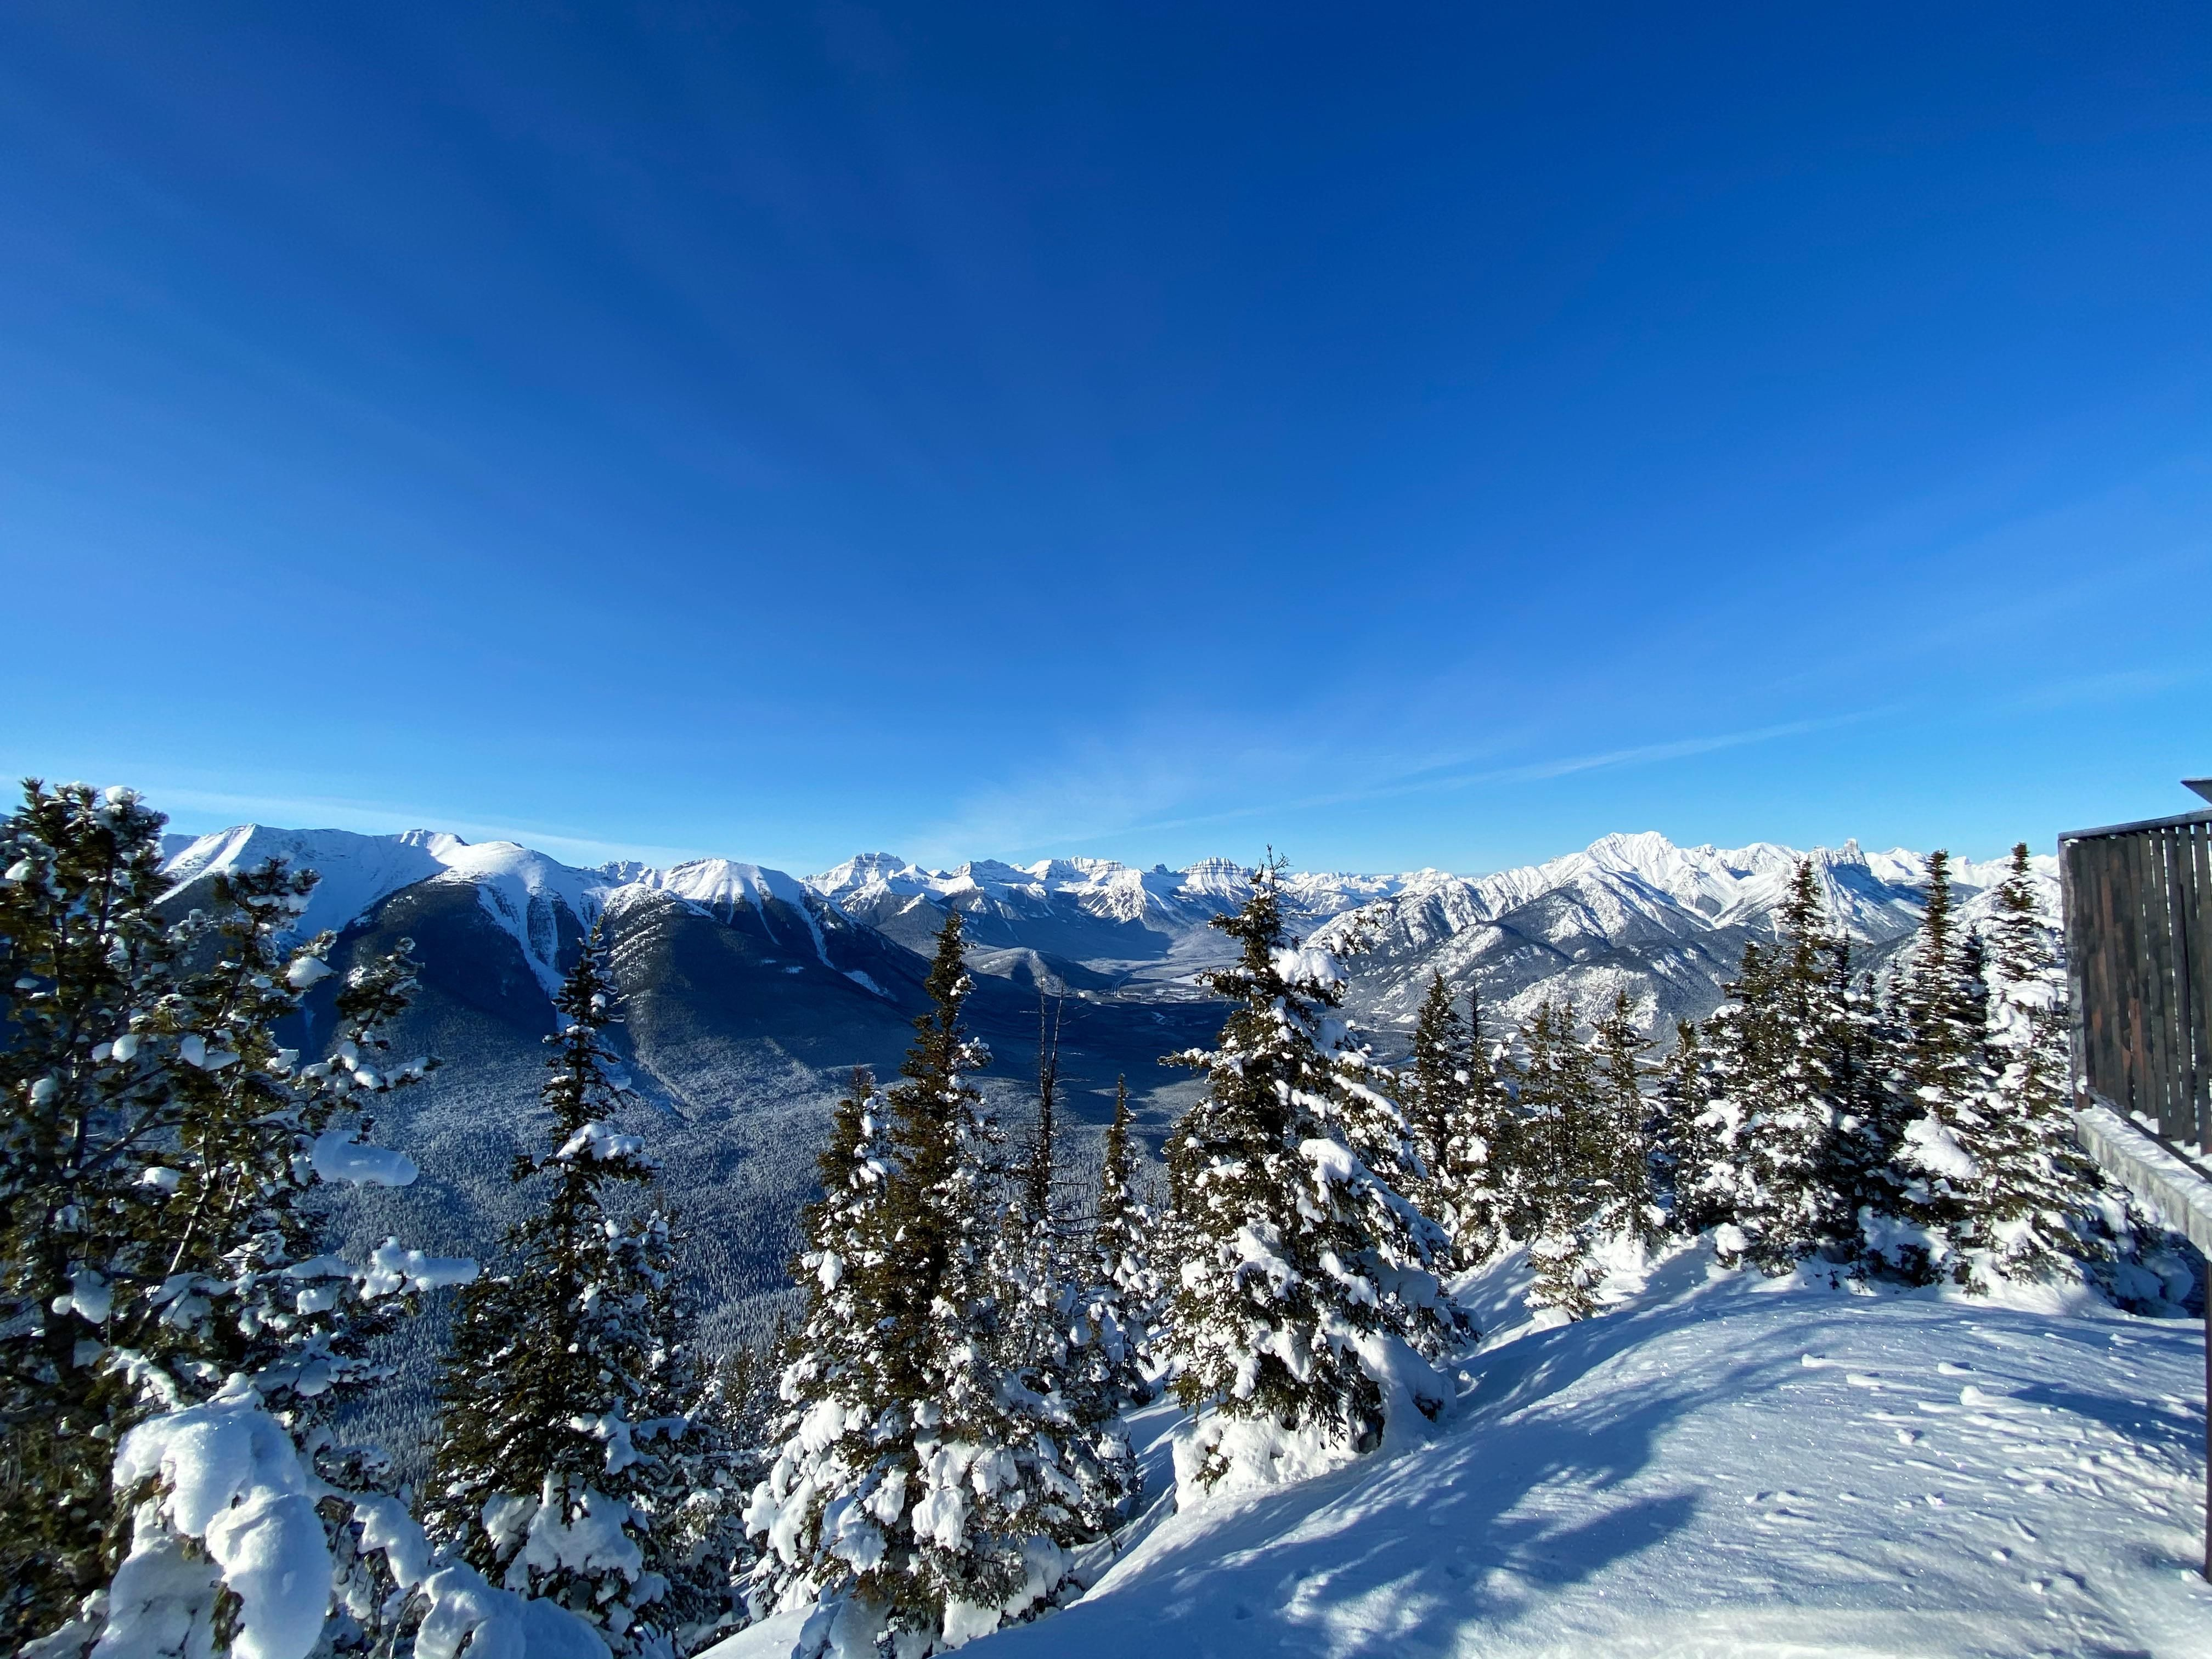 View of half of the Canadian Rockies in Banff National